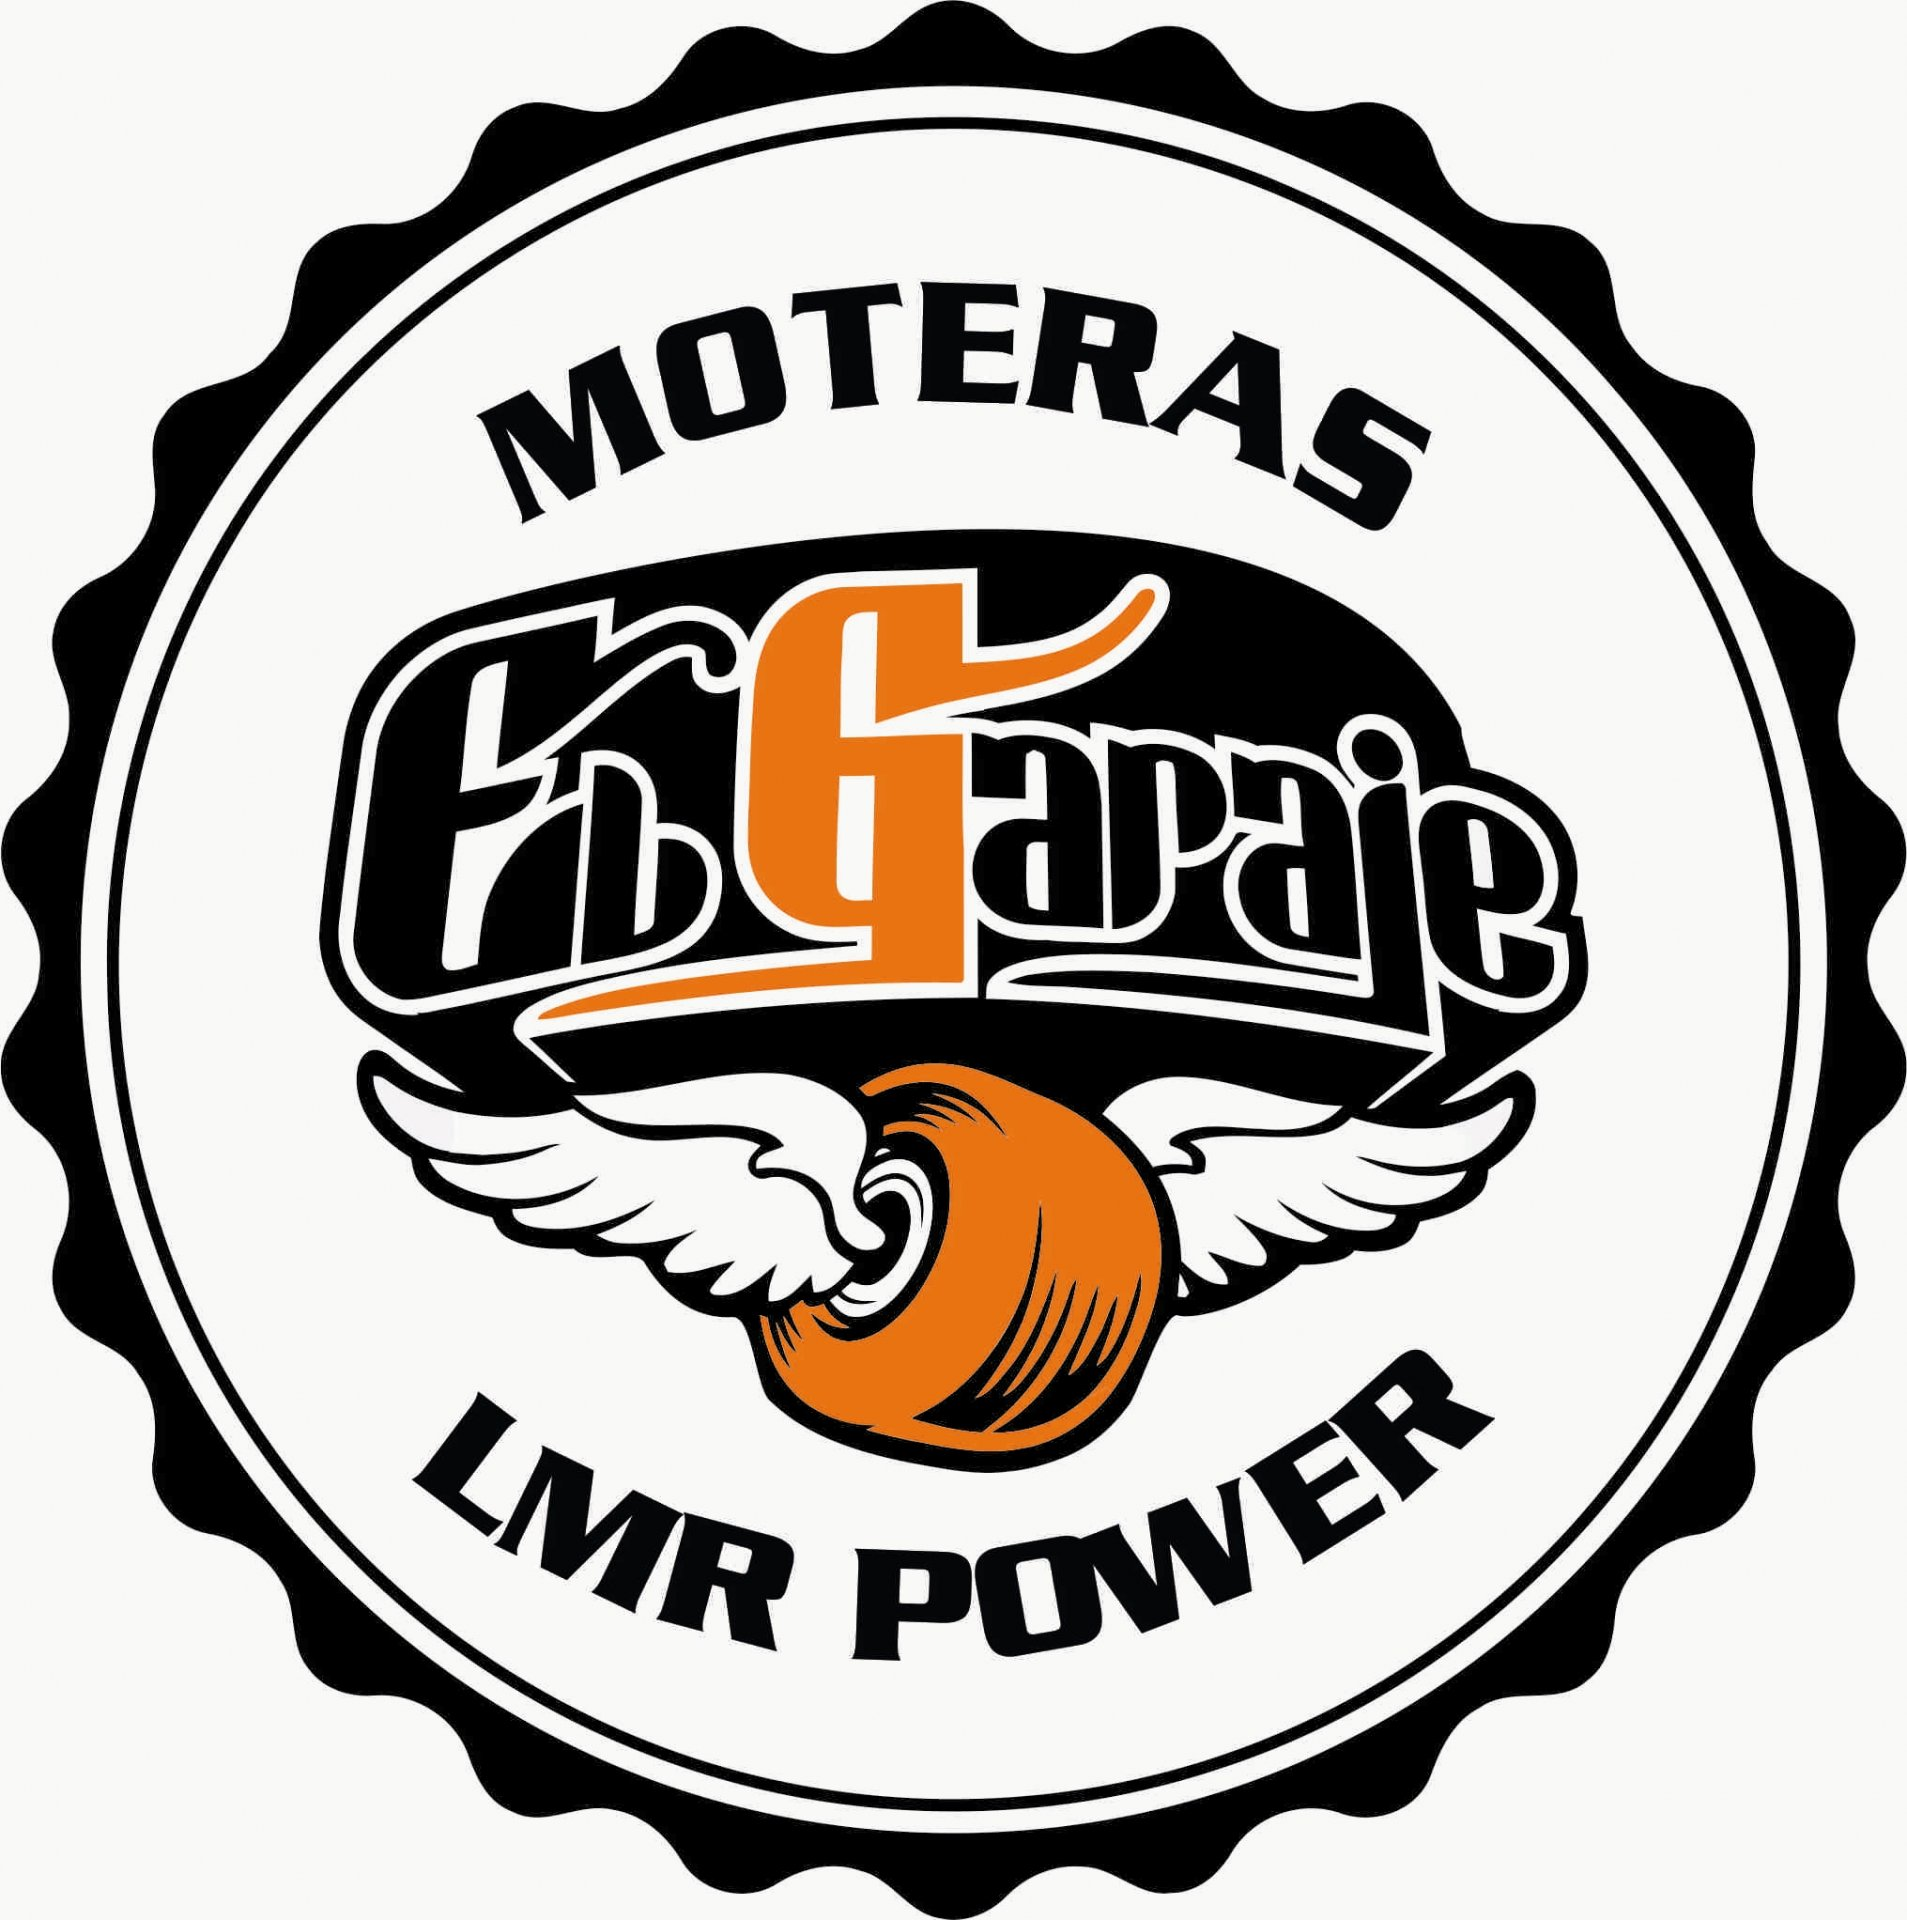 logo-garage-moteras-lmrpower.JPG